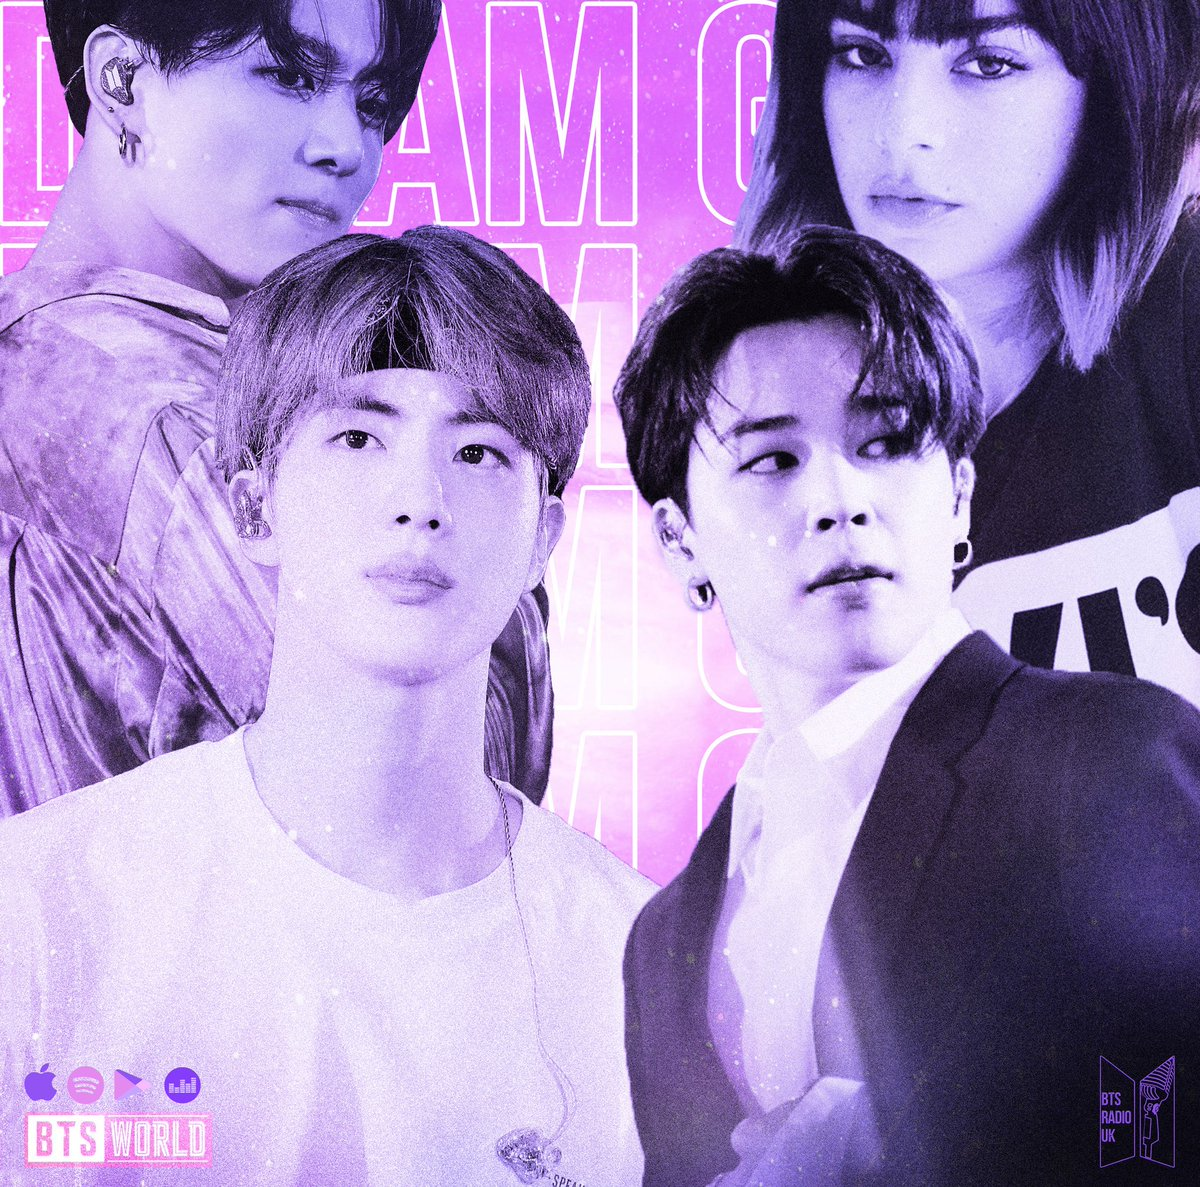 UK @BigTop40 confirmation  @BTS_twt, @charli_xcx are again at #No36 On the @BigTop40 UK singles chart with #DreamGlow - broadcast on @CapitalOfficial & @thisisheart.  Congratulations @BTS_twt and @BigHitEnt   #BTSonRadioUK #BTS @bts_bighit #MAP_OF_THE_SOUL_PERSONA #BTSWORLD <br>http://pic.twitter.com/Y32Vr6qkbC